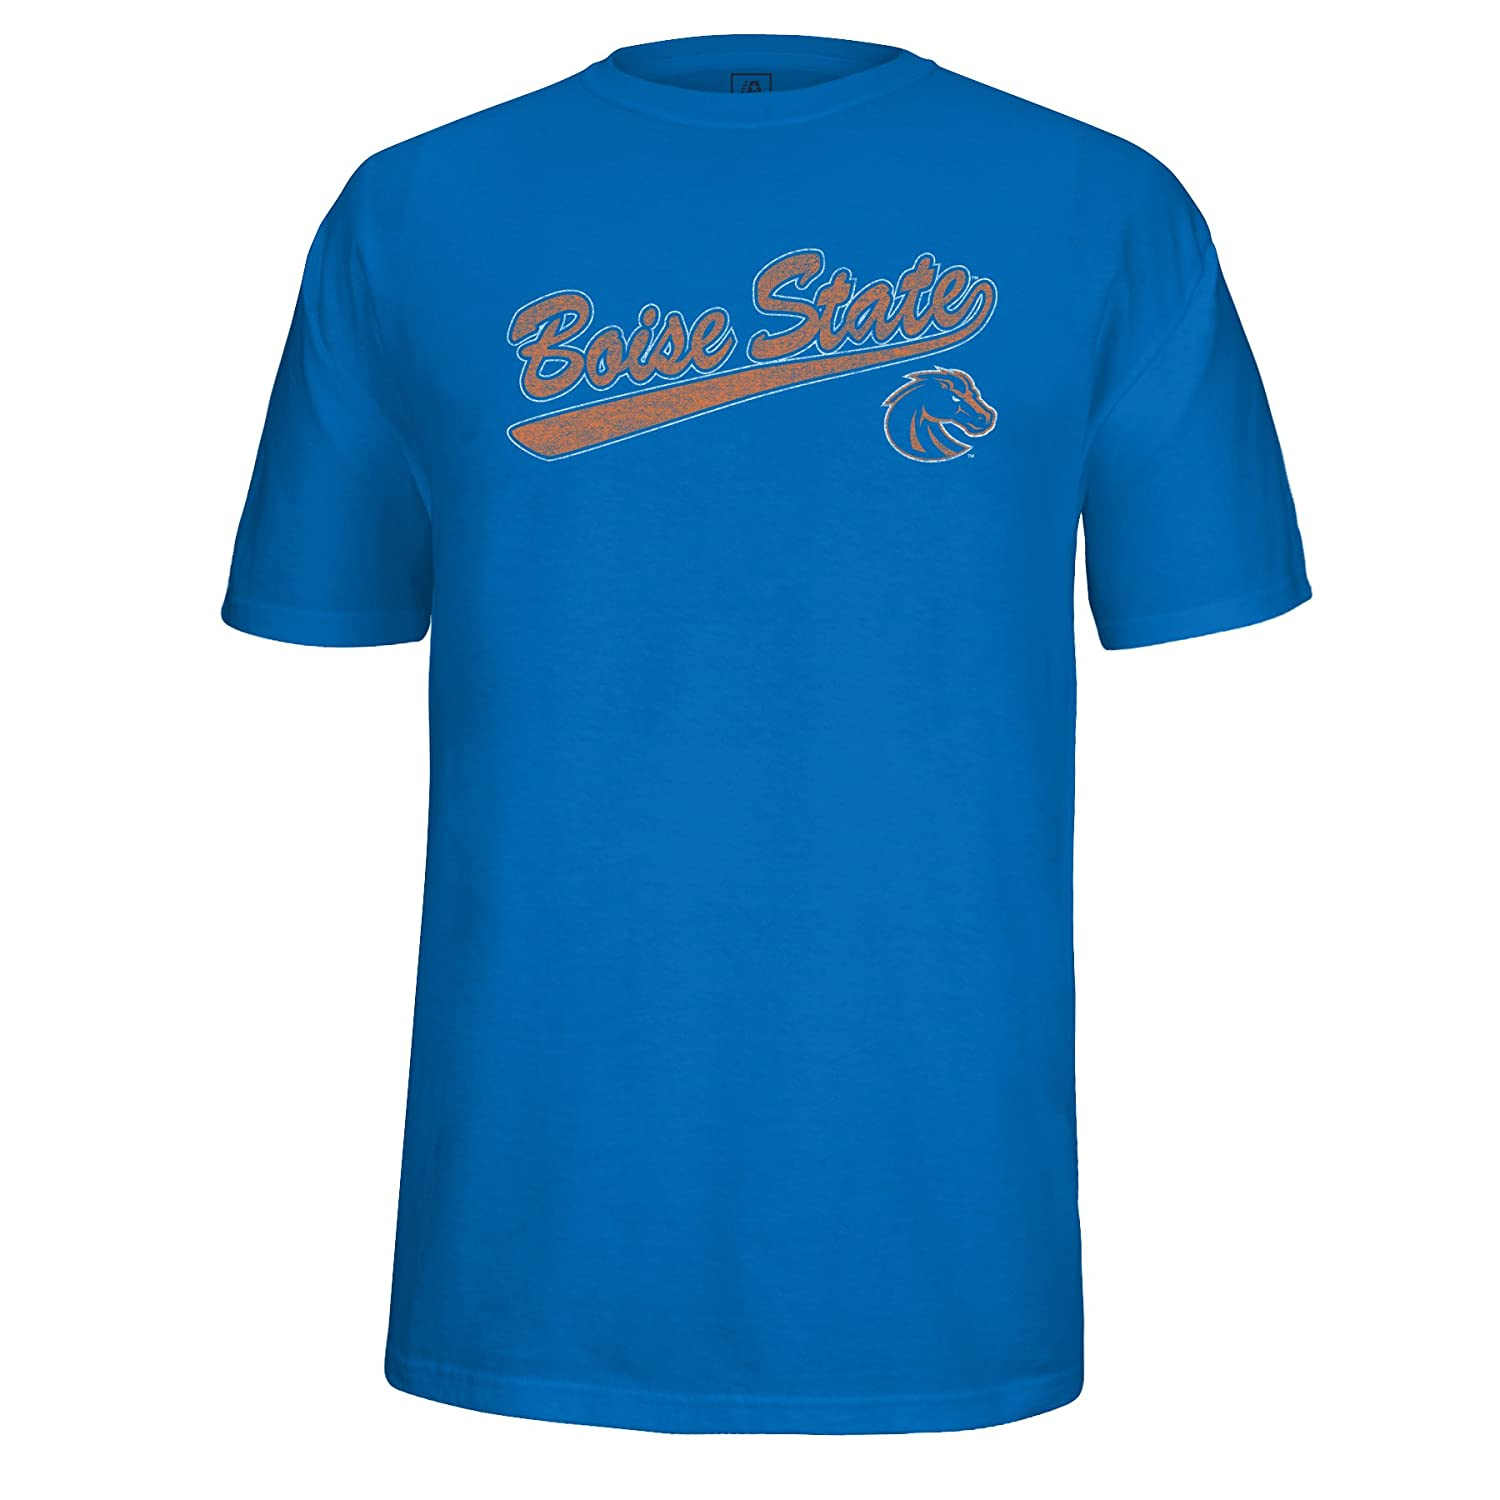 NCAA Boise State Broncos Mens School Name Script Tail Logo Choice Tee XX-Large Royal